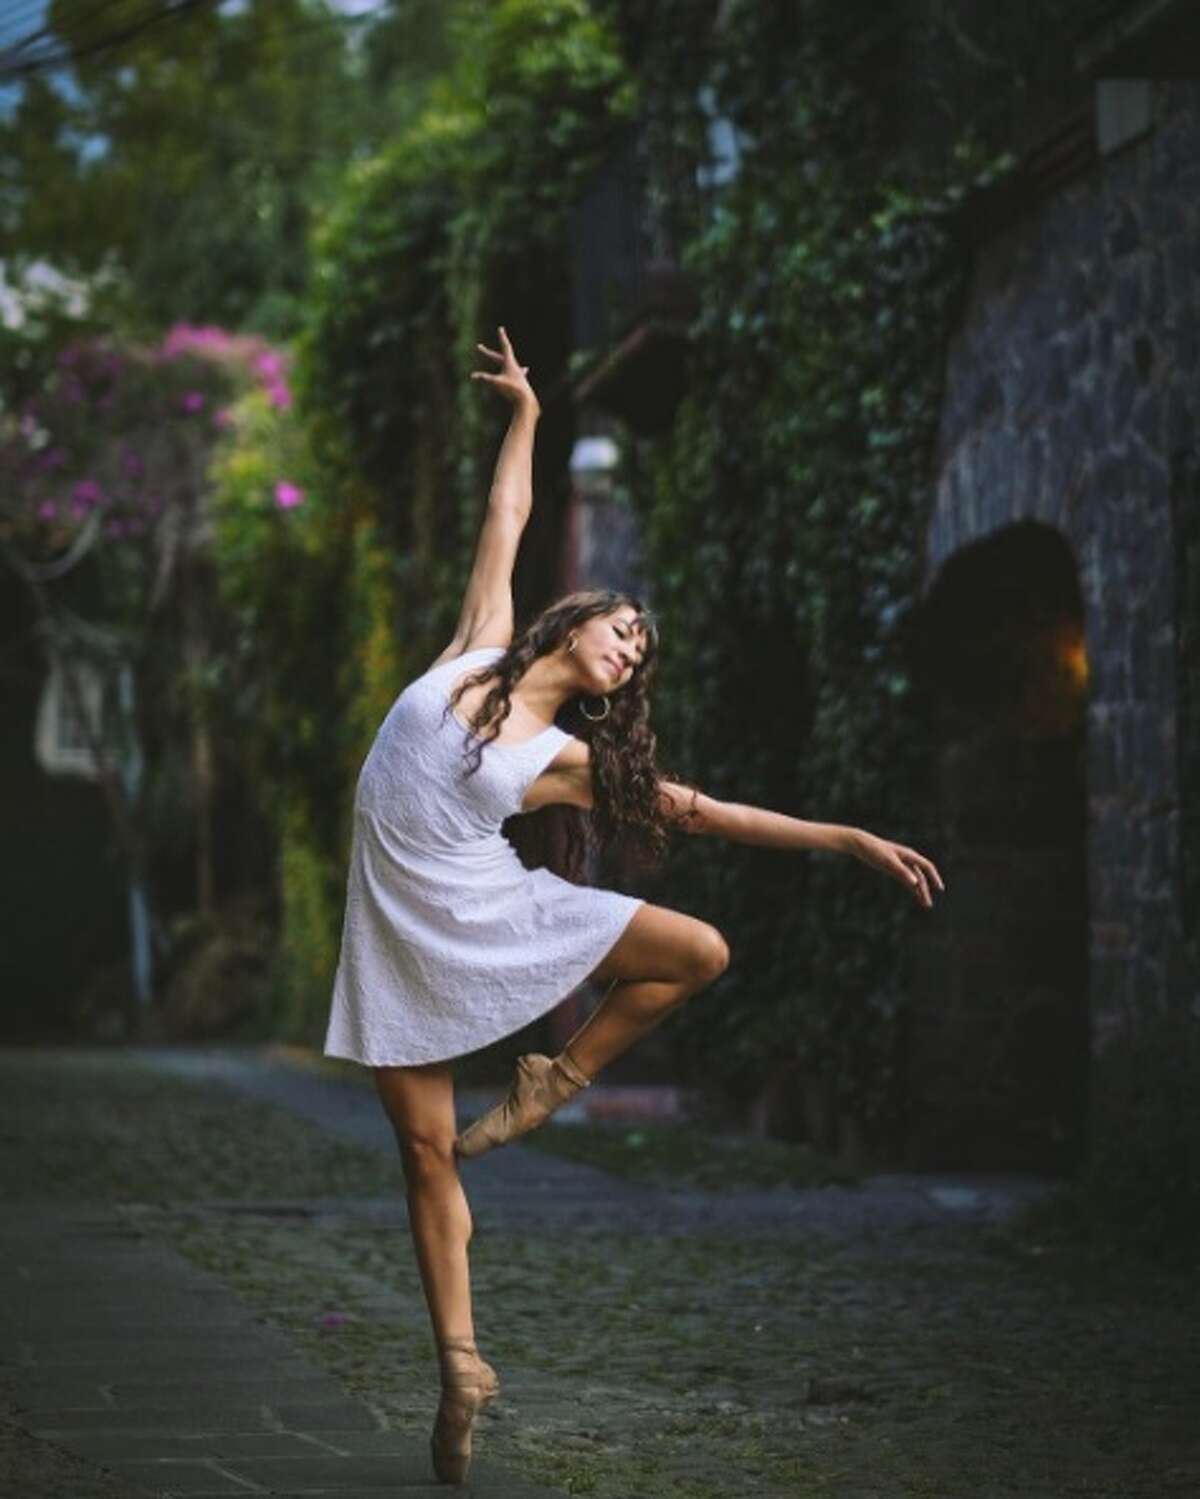 Omar Z Robles, who often uses bustling streets his photography studio, spent two weeks in Mexico capturing the country's best ballet dancers to disprove some of president elect Donald Trump's previous rhetoric on immigrants.